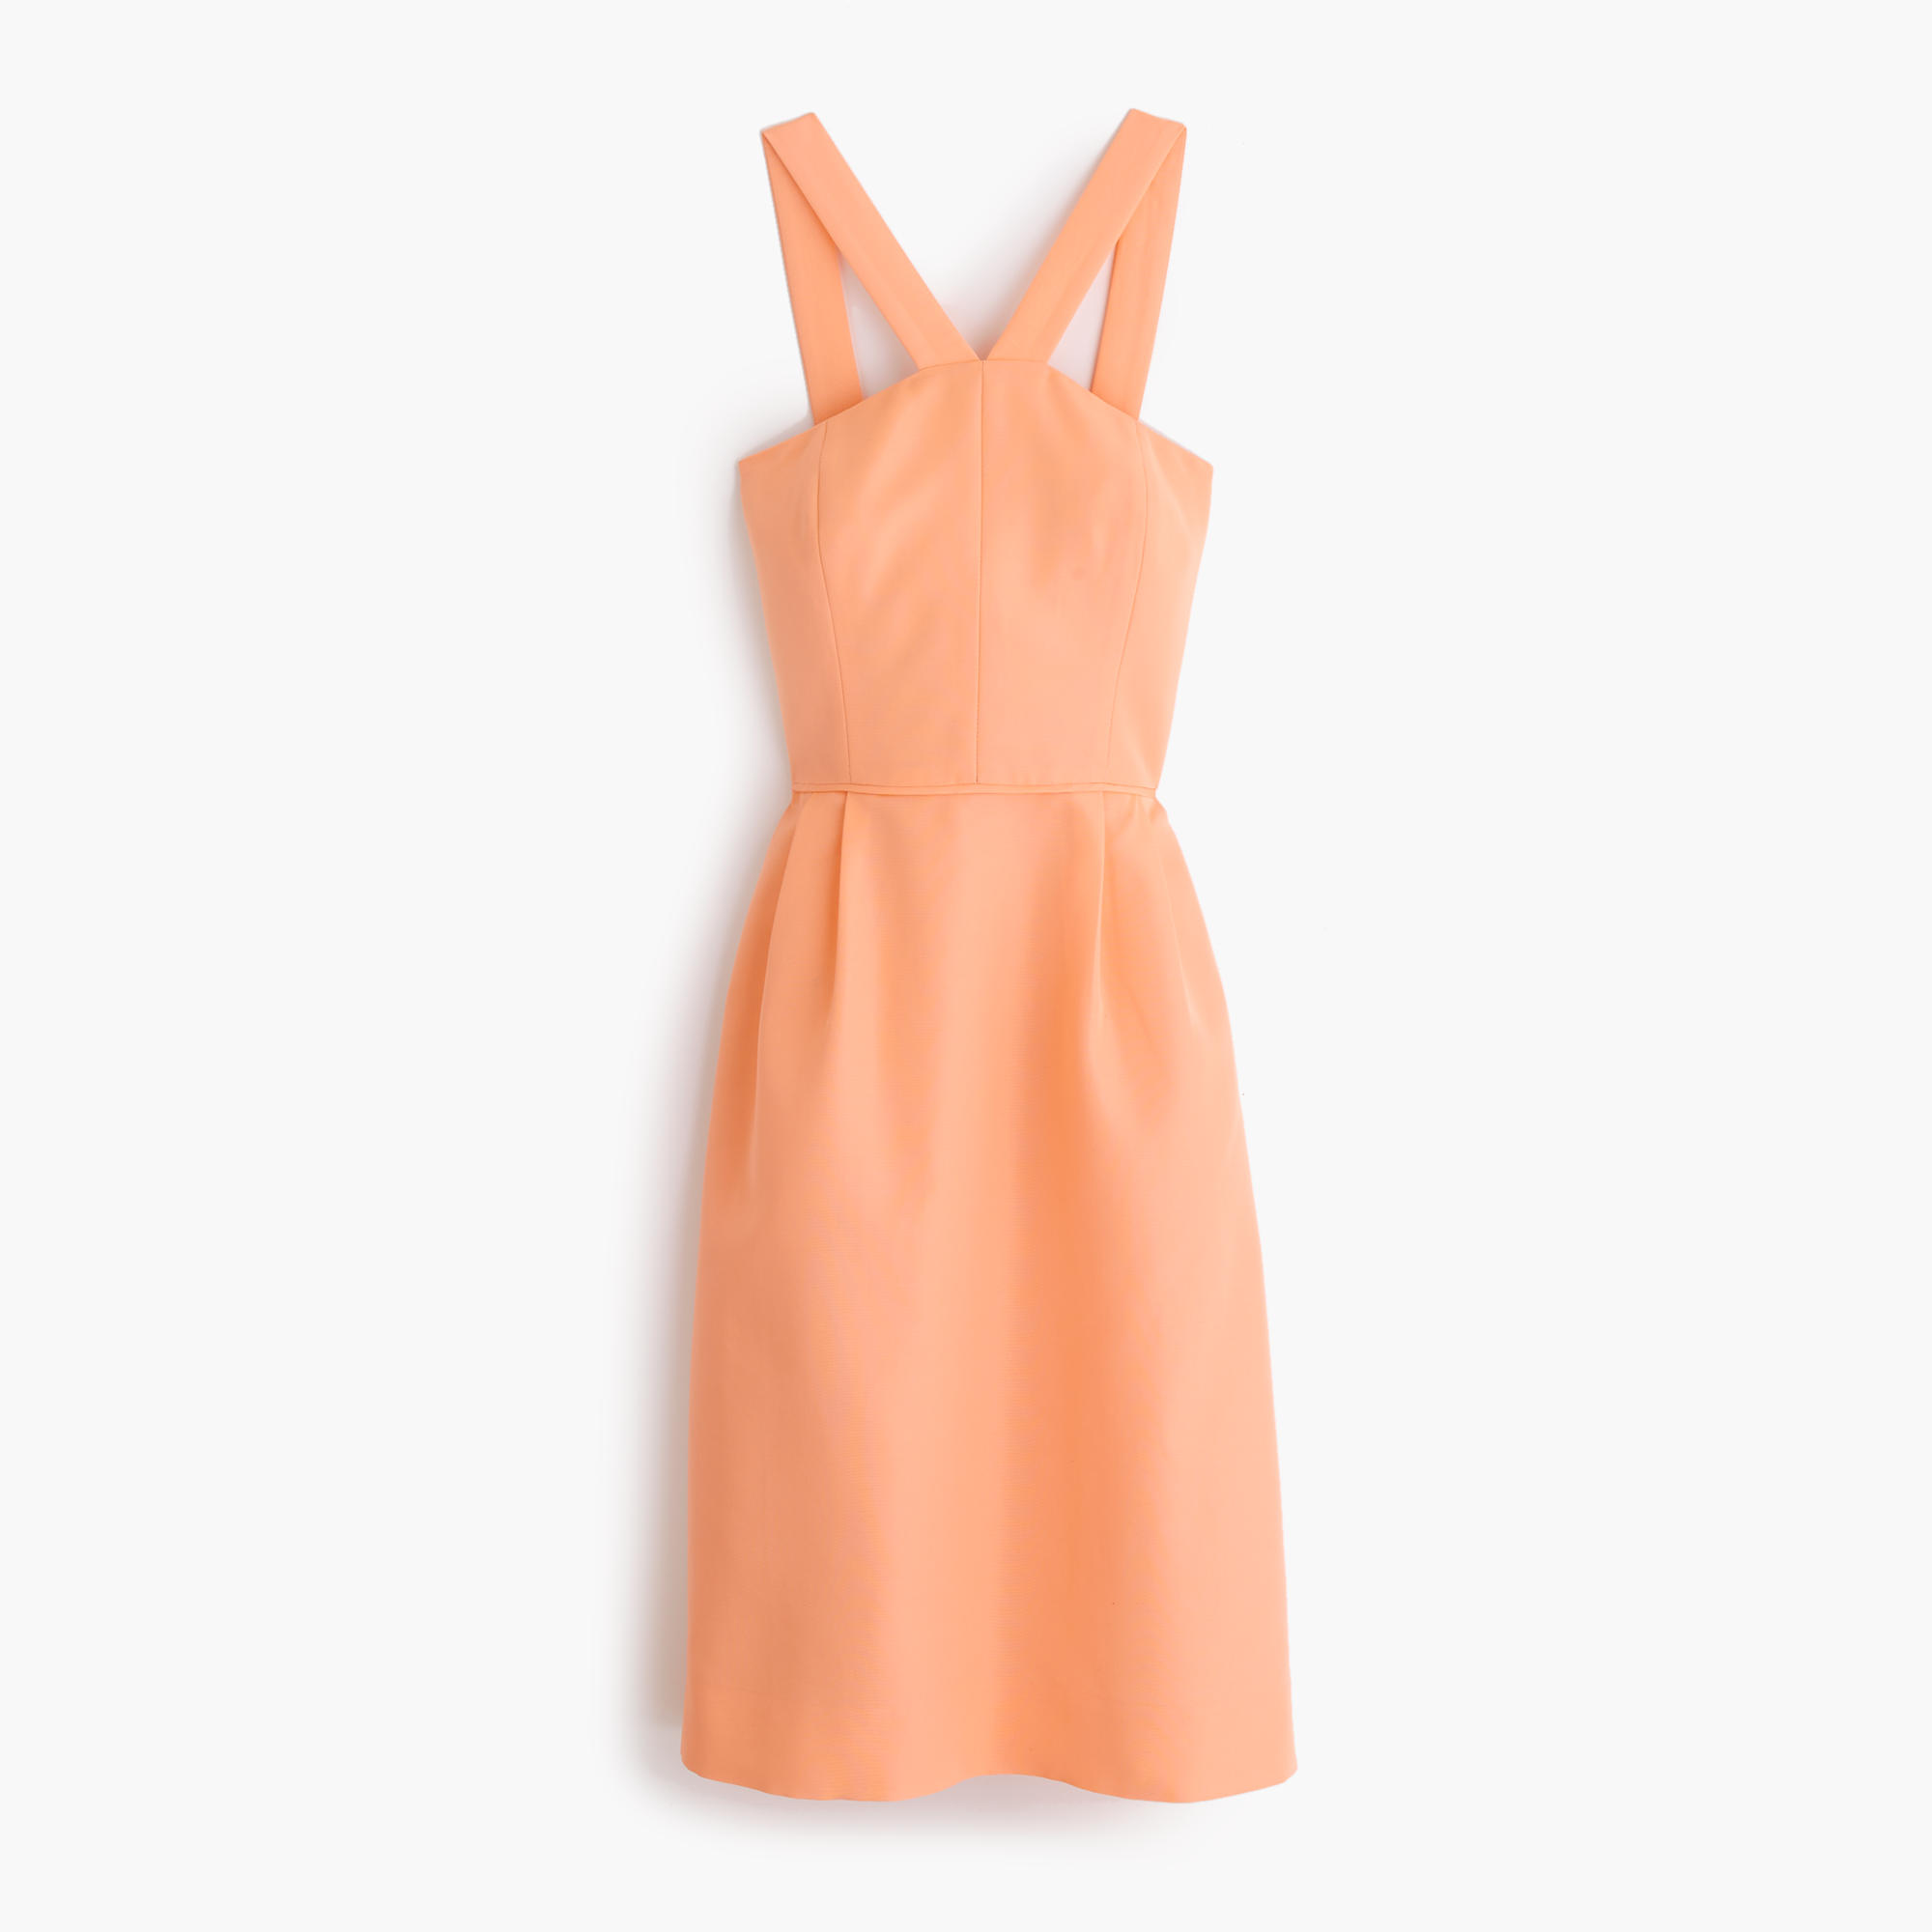 J.Crew $140 from $200